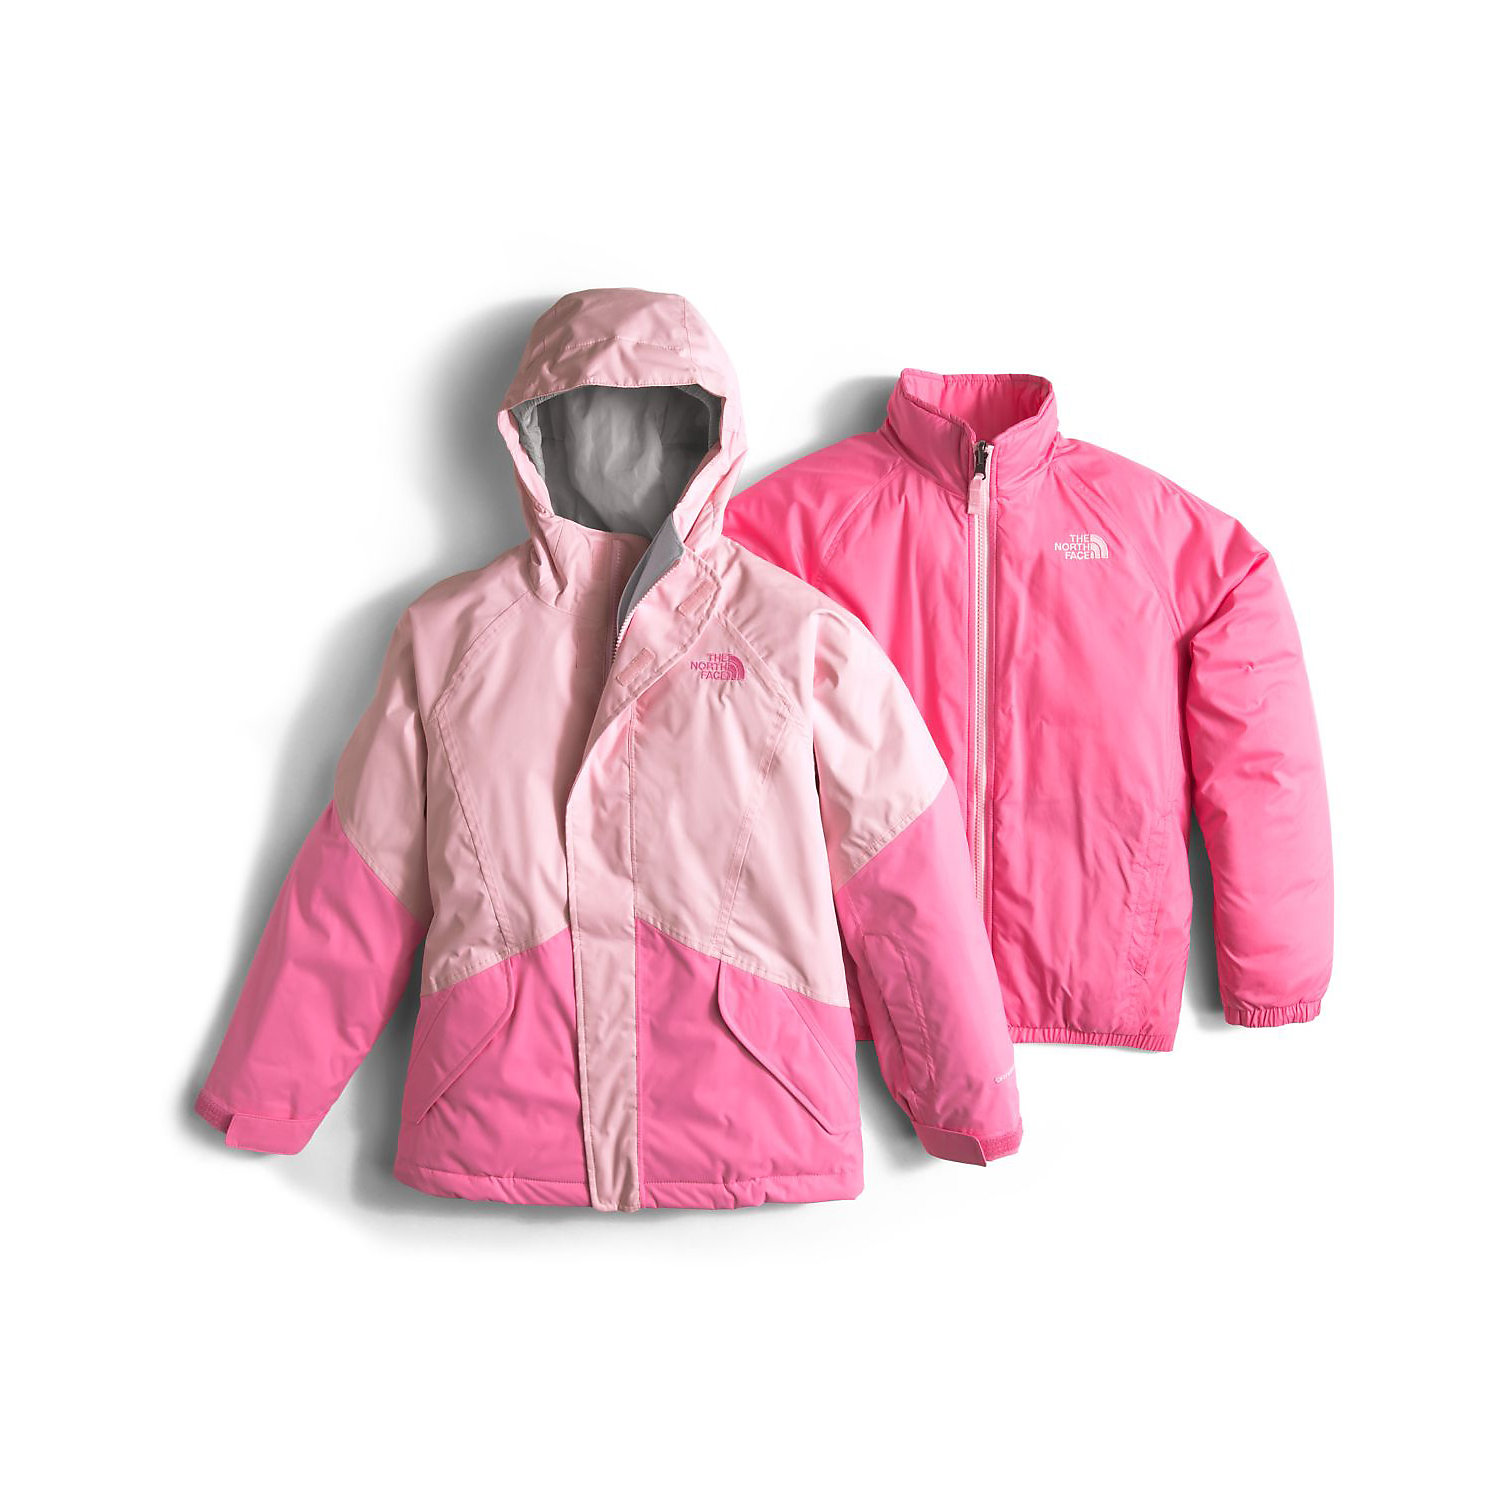 7f10d041edfb The North Face Girl s Kira Triclimate Jacket - Moosejaw